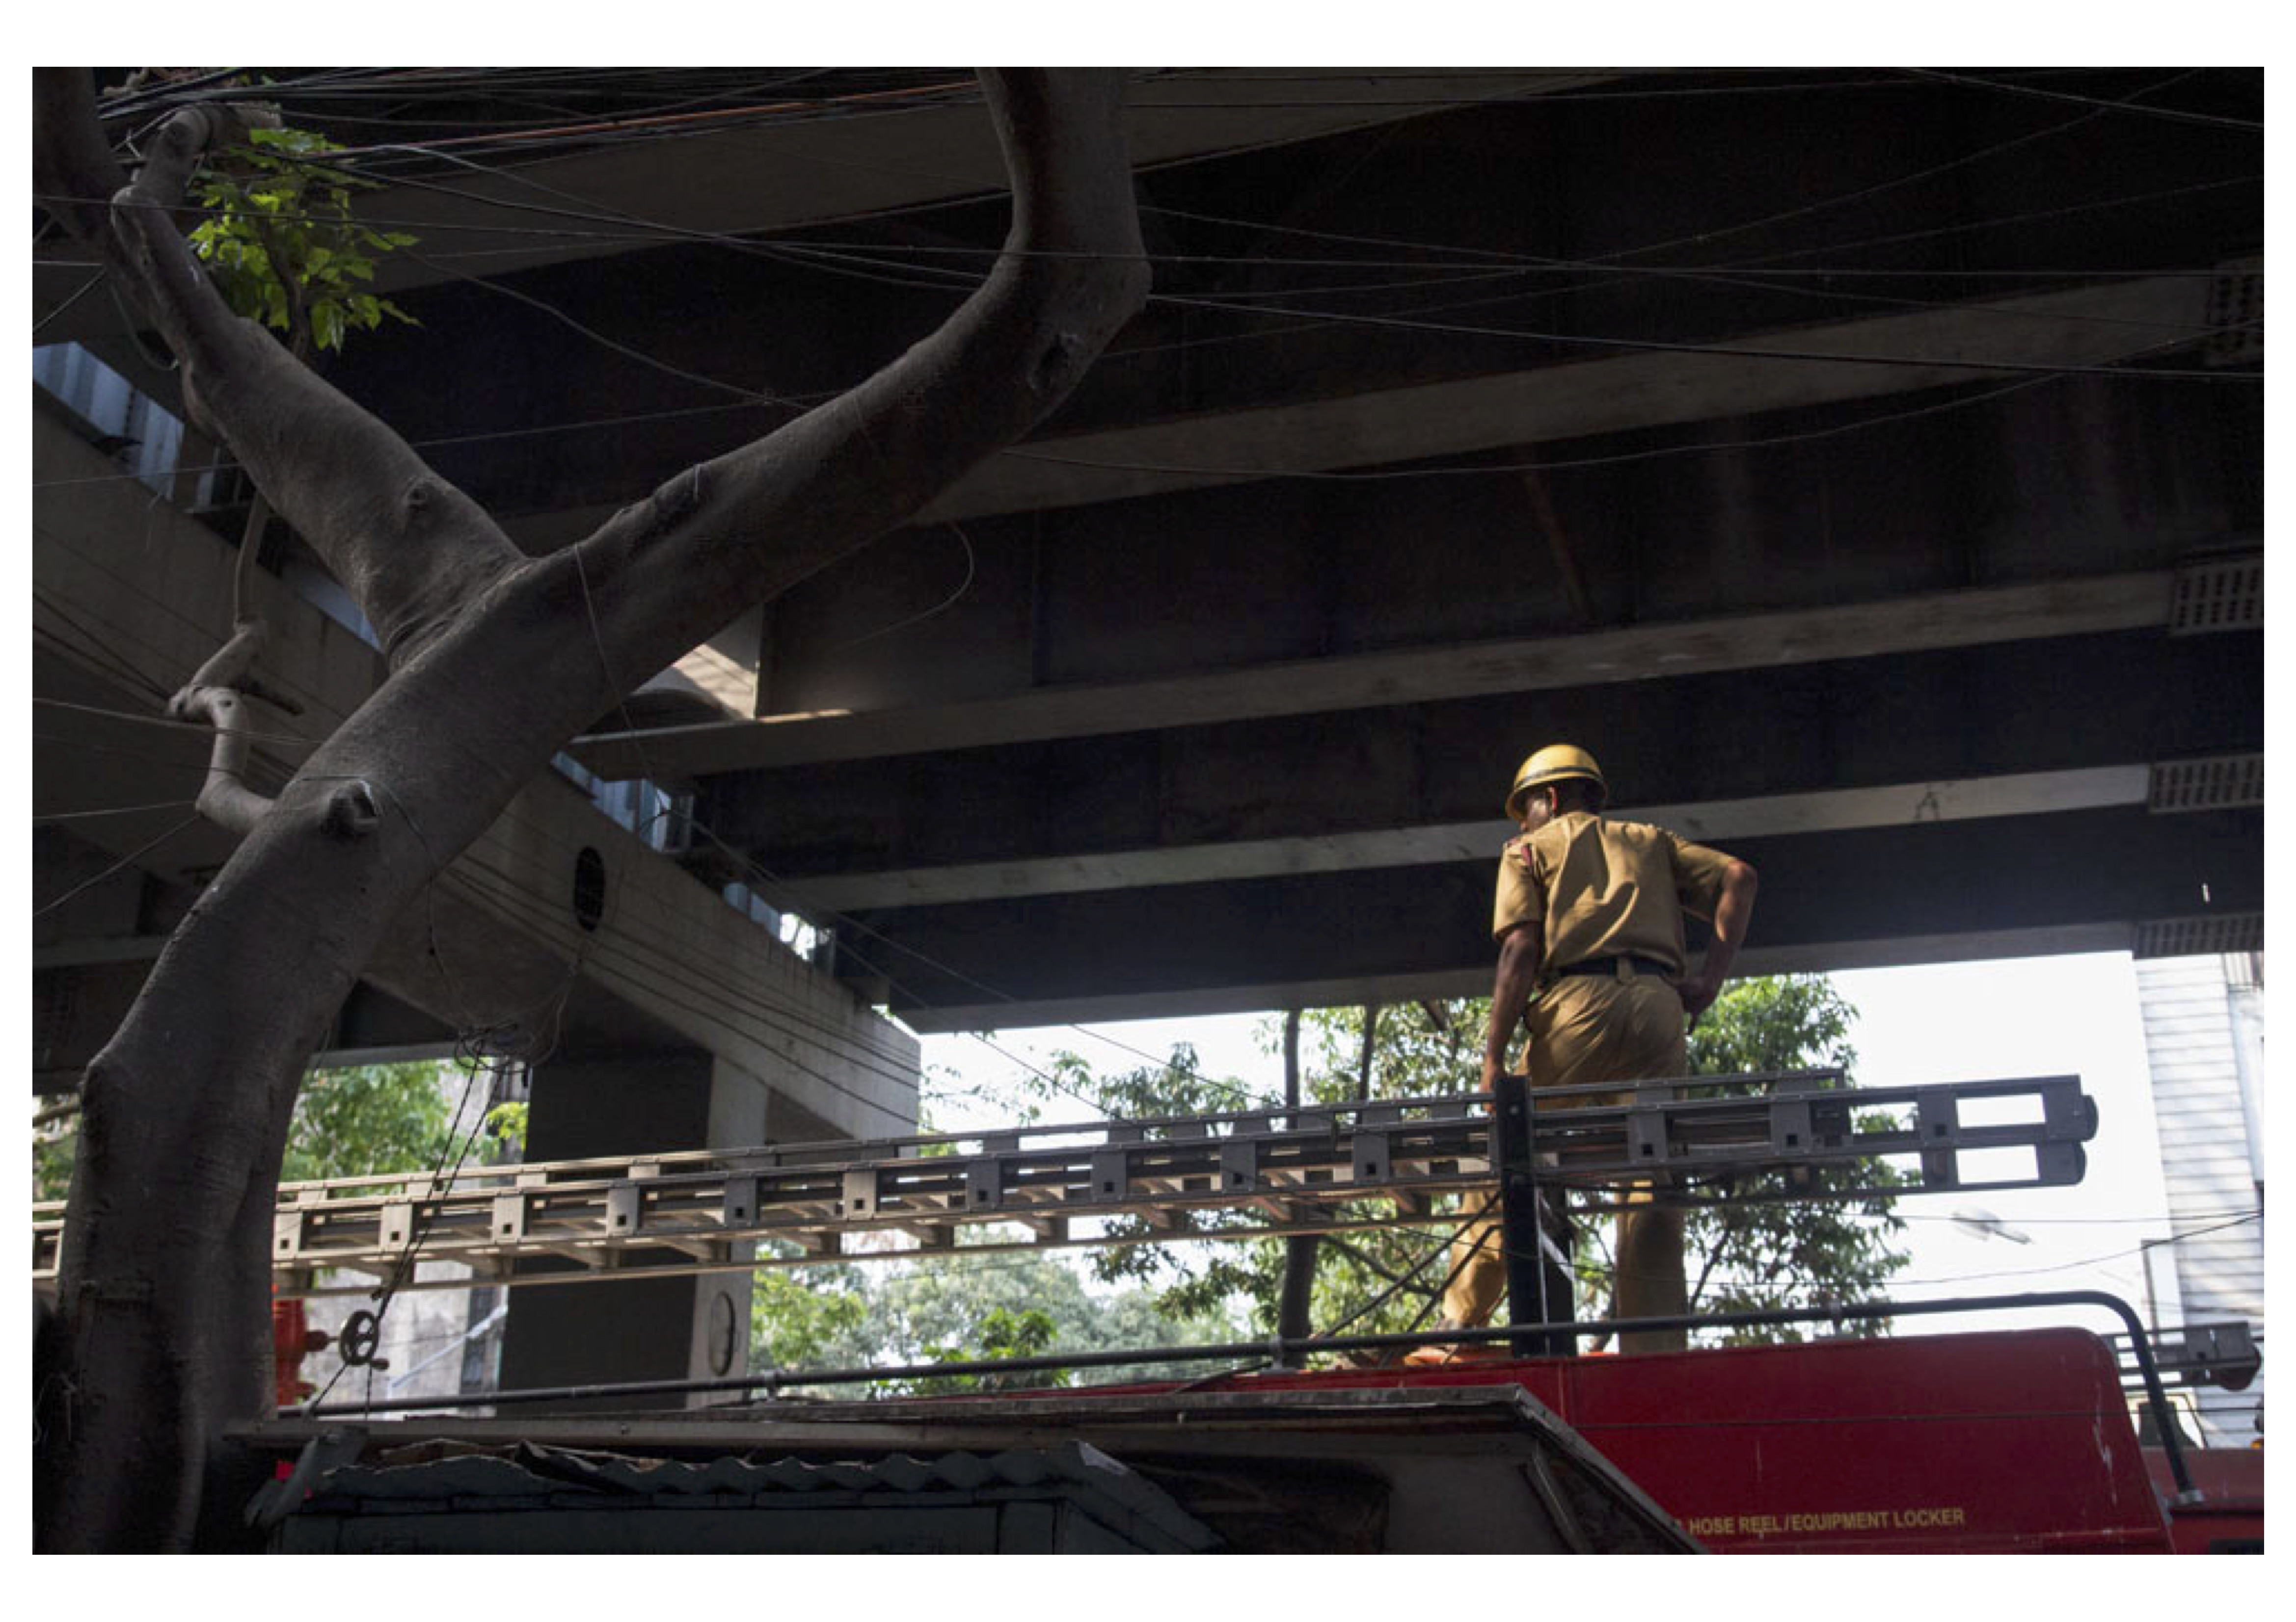 Photo Gallery: After the Kolkata Tragedy